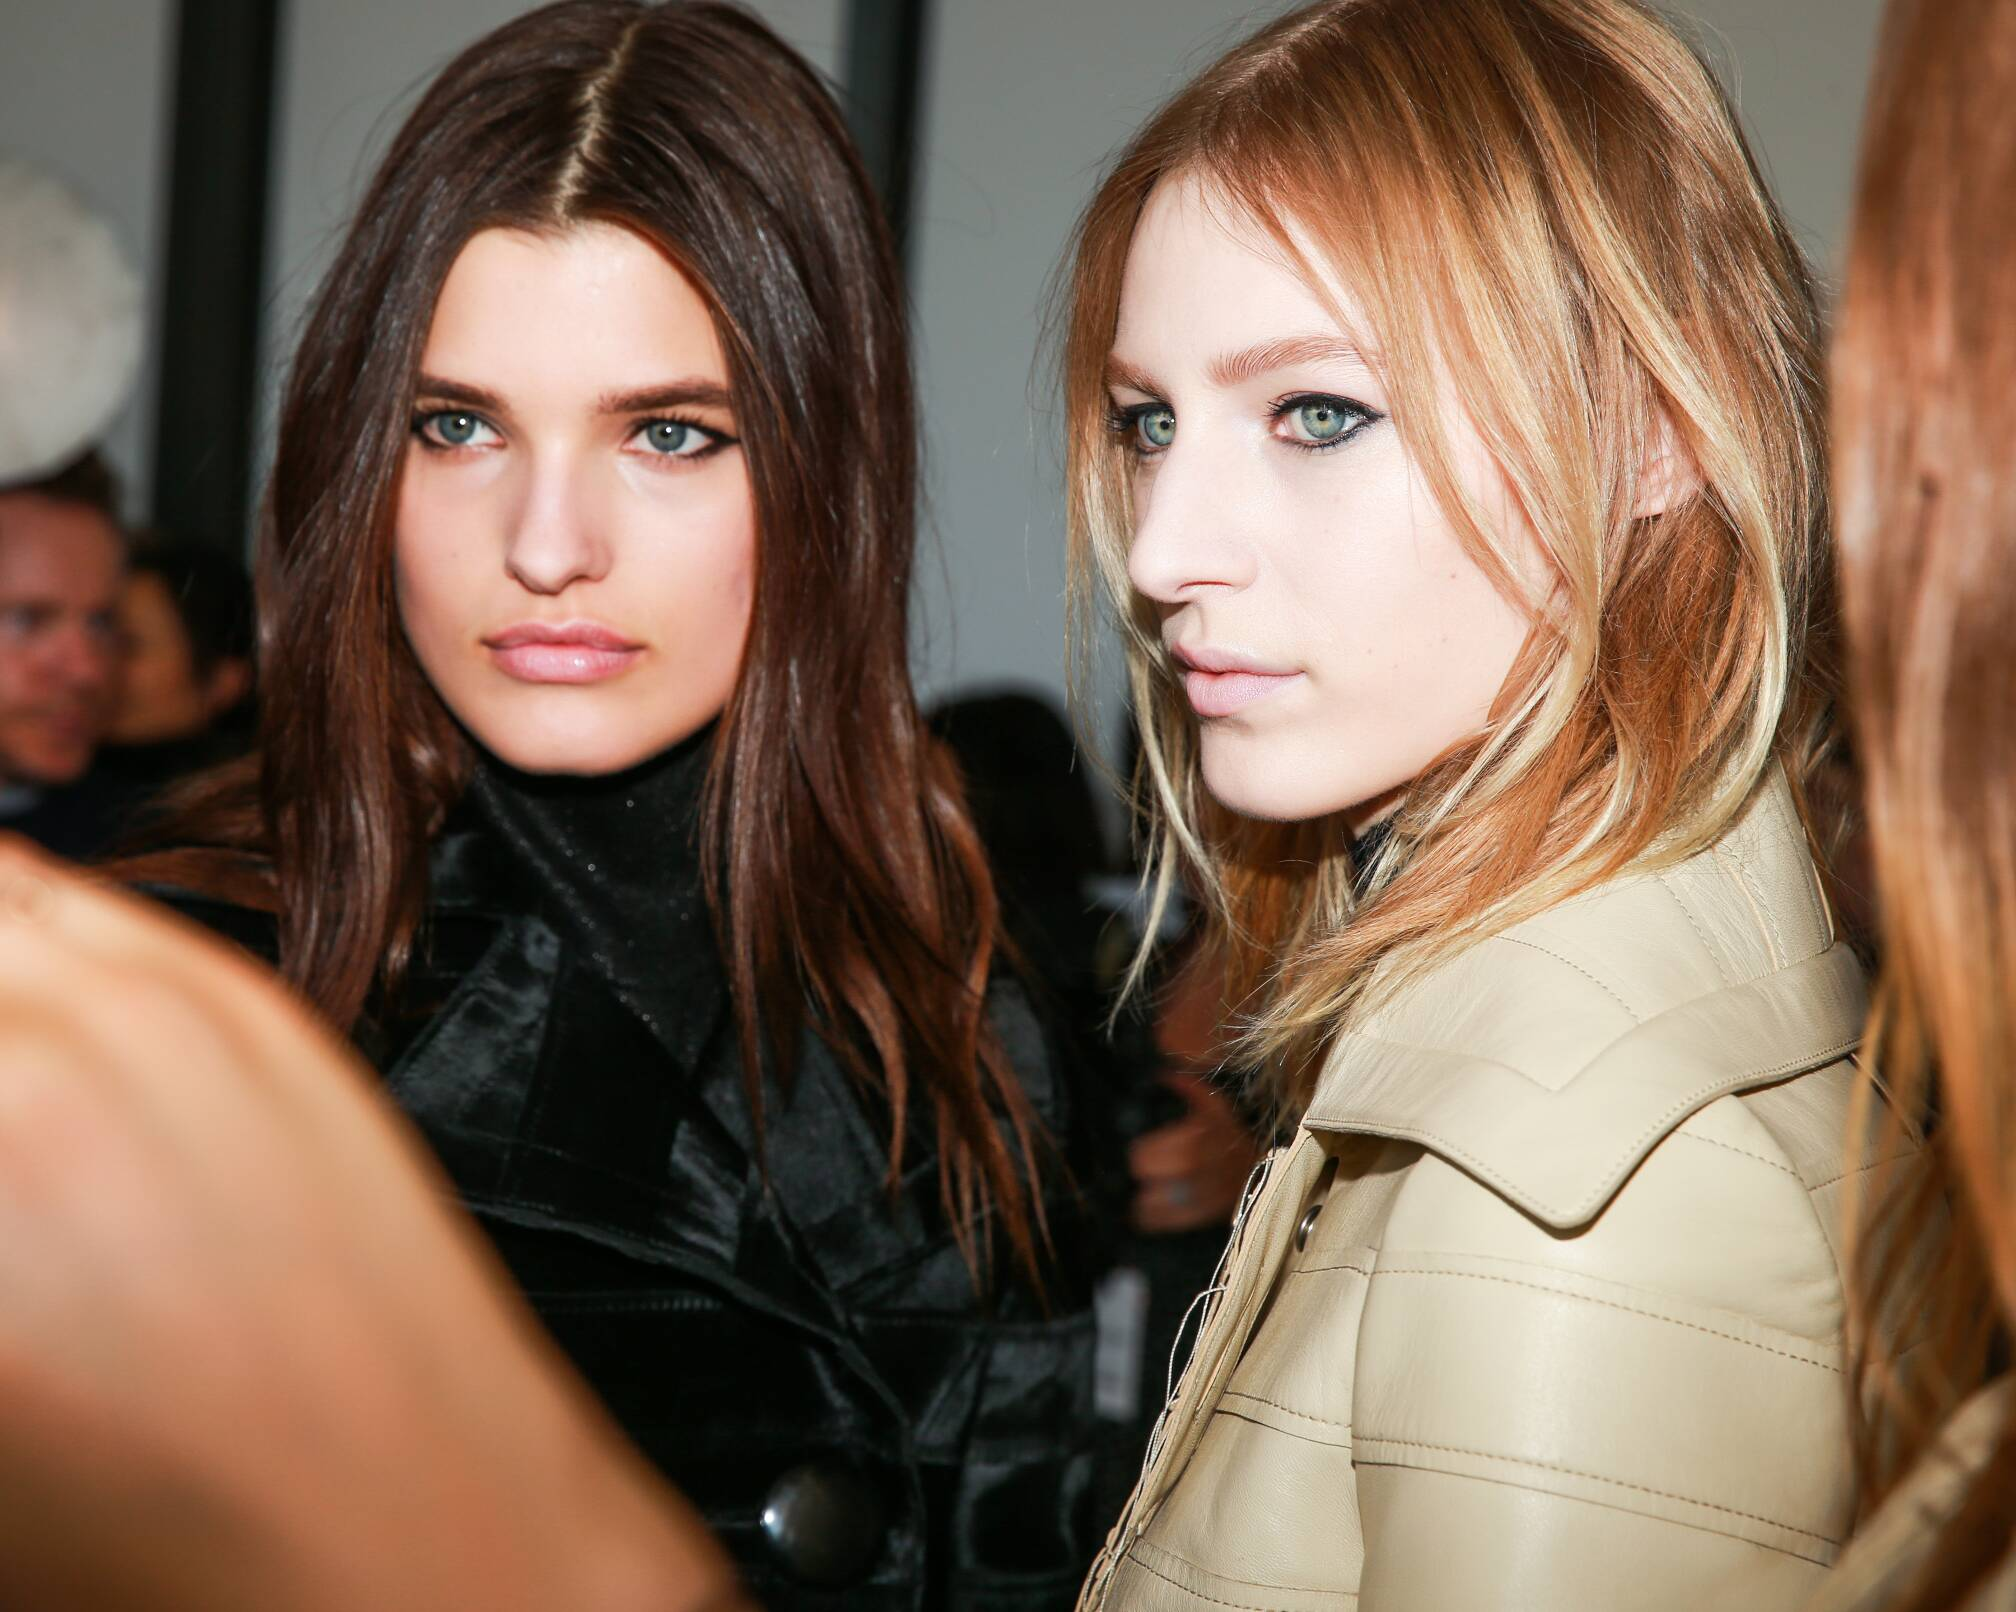 Calvin Klein Backstage Fashion Models